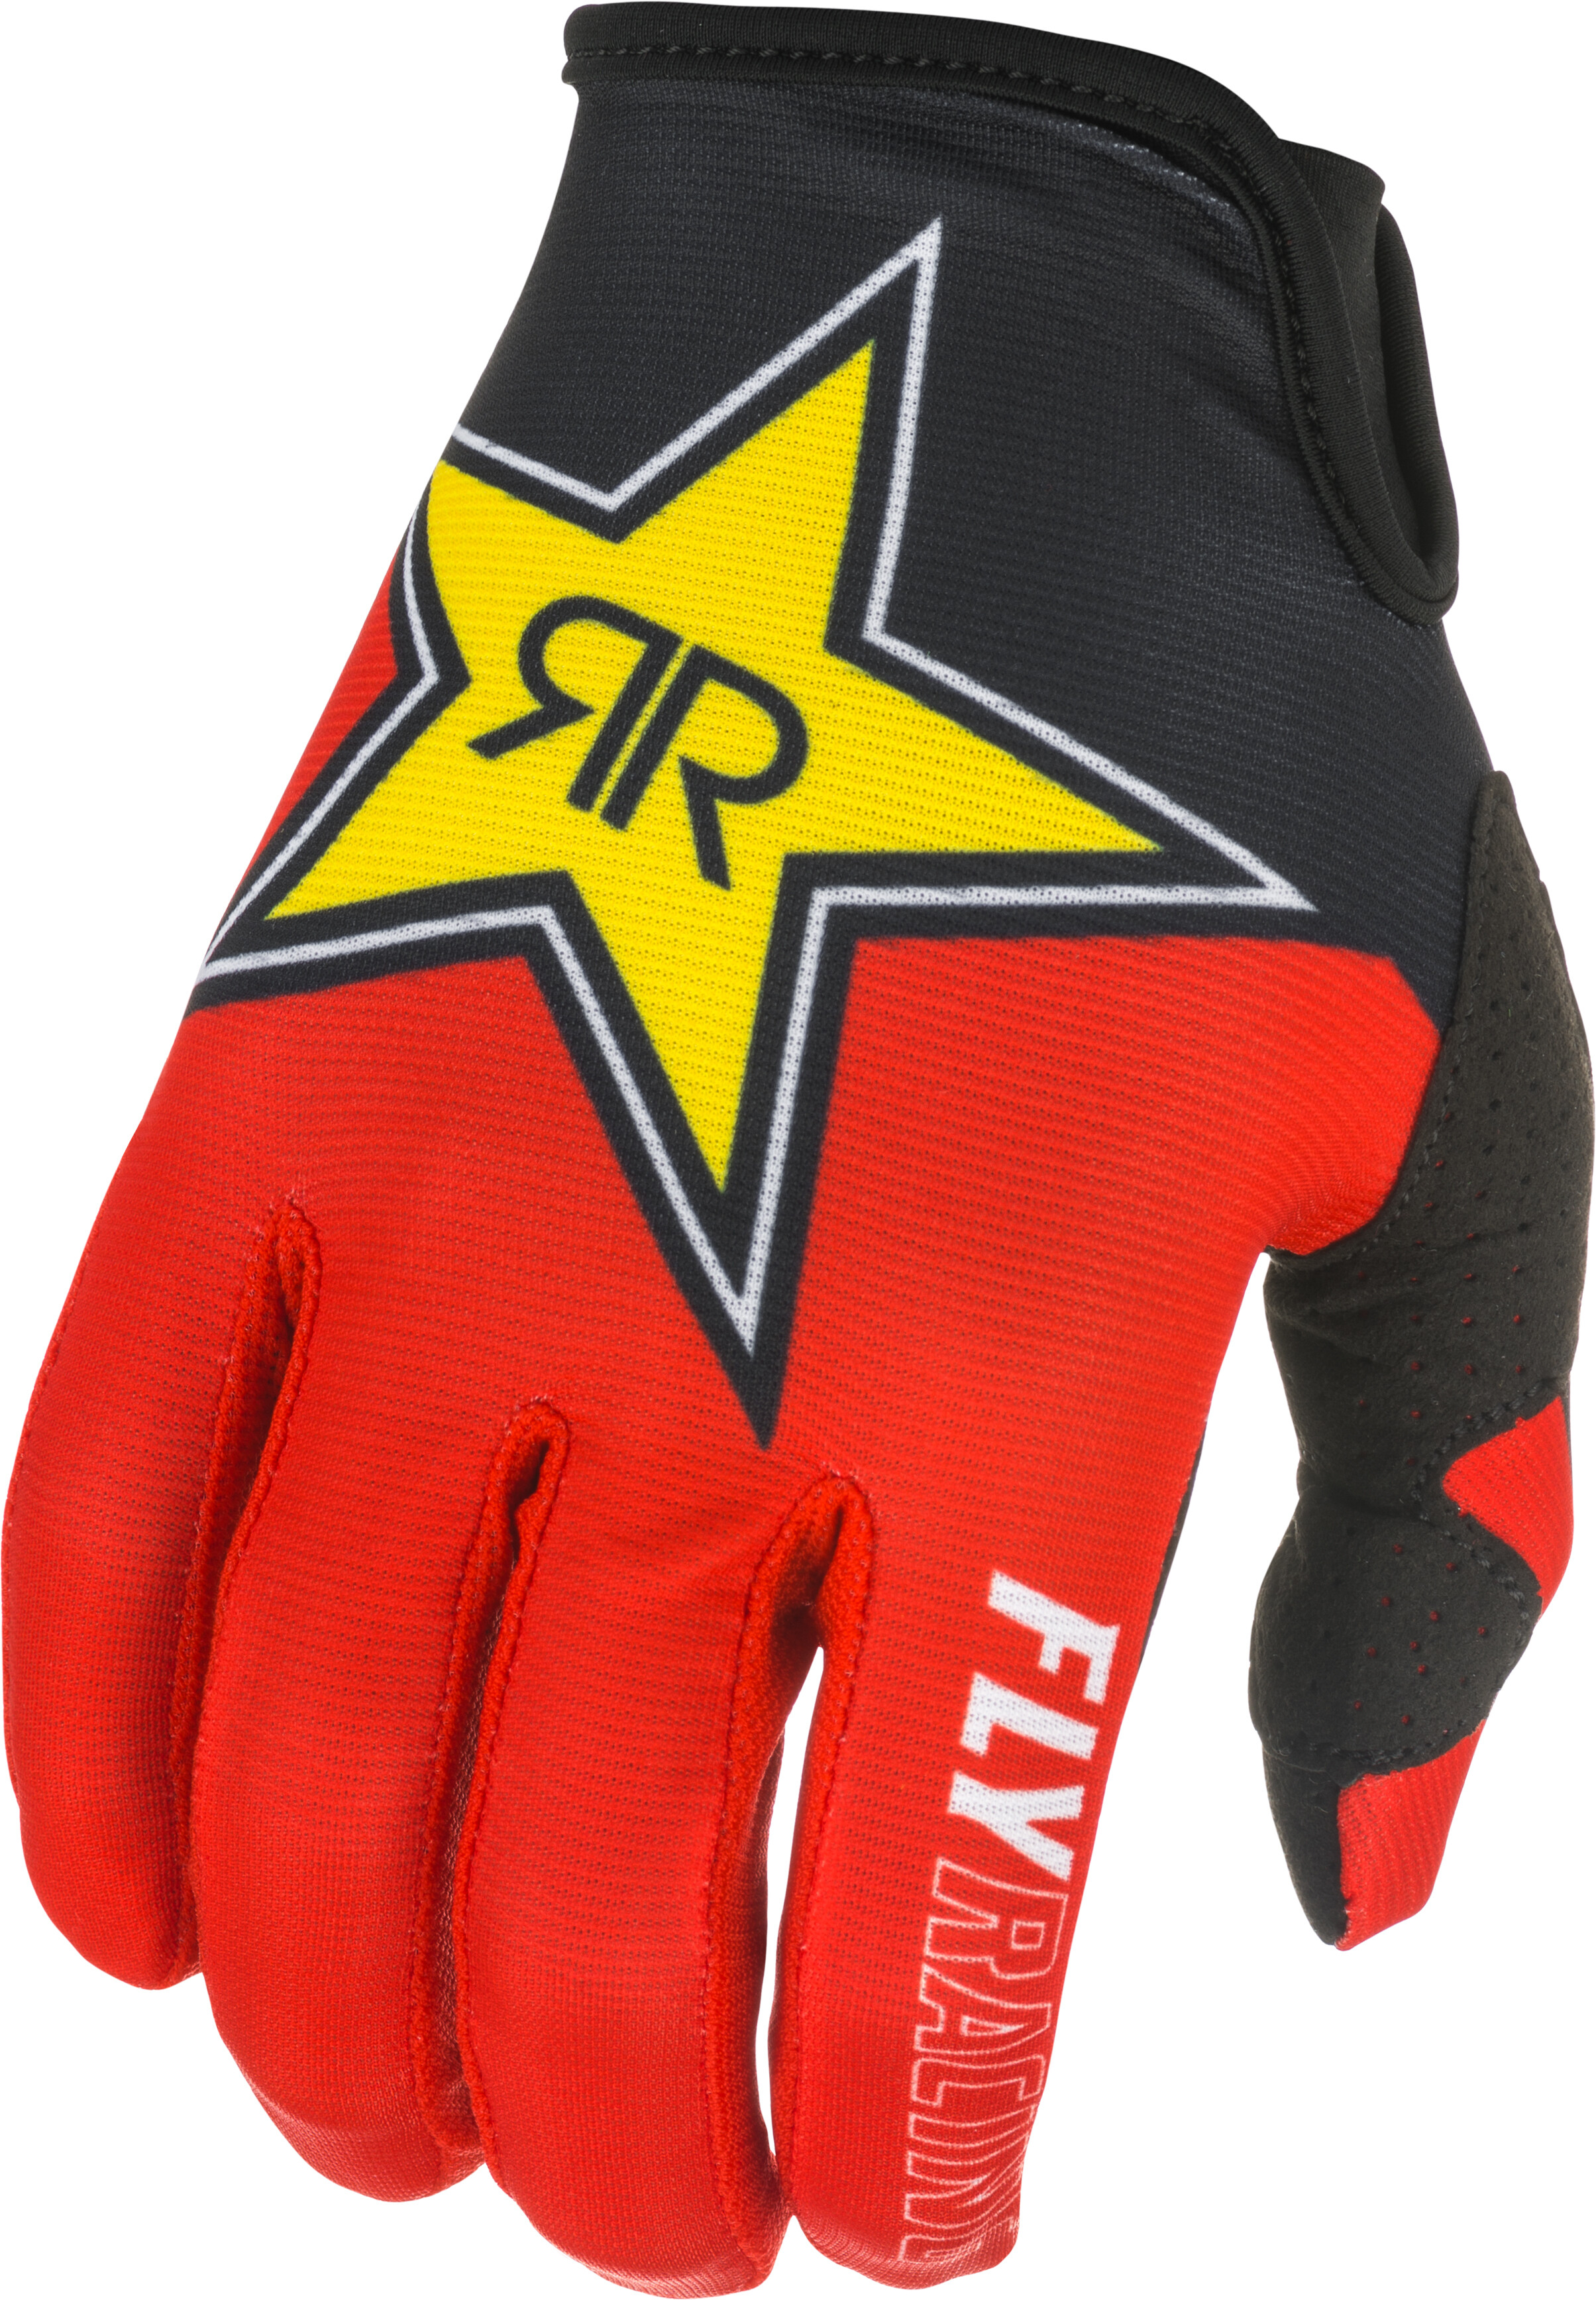 LITE ROCKSTAR GLOVES BLACK/RED/YELLOW SZ 08